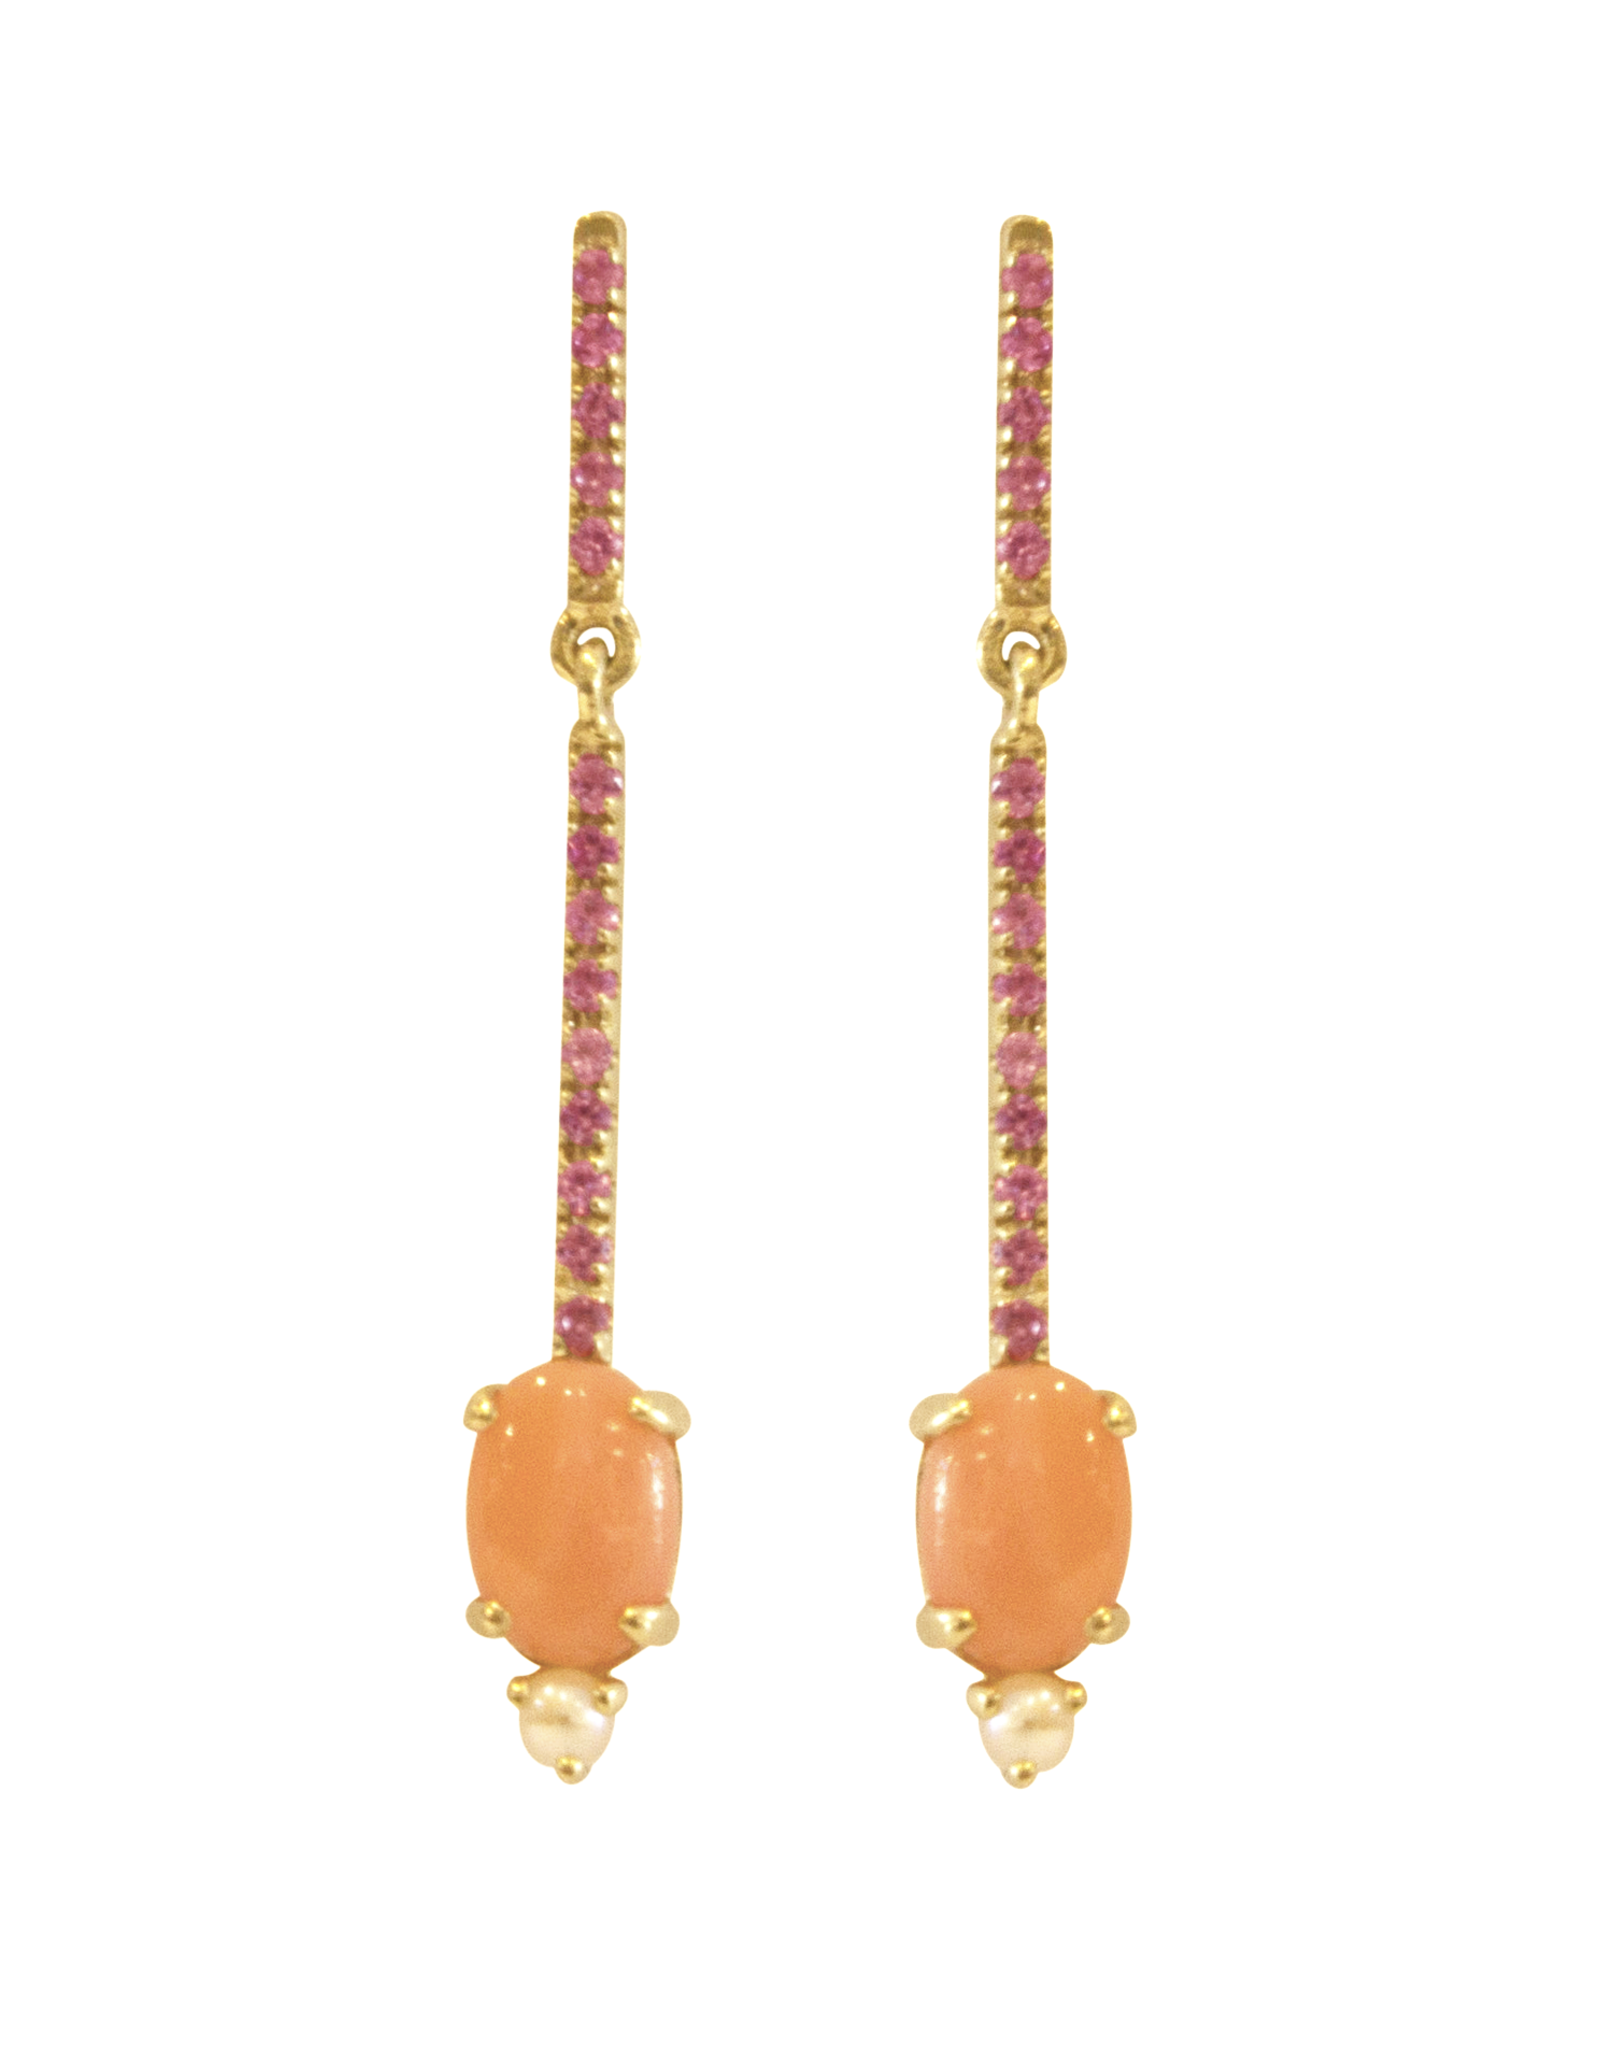 Mason Grace Jewelry Sticks and Stones Oval Earrings - Coral + Pink Sapphire + Pearl